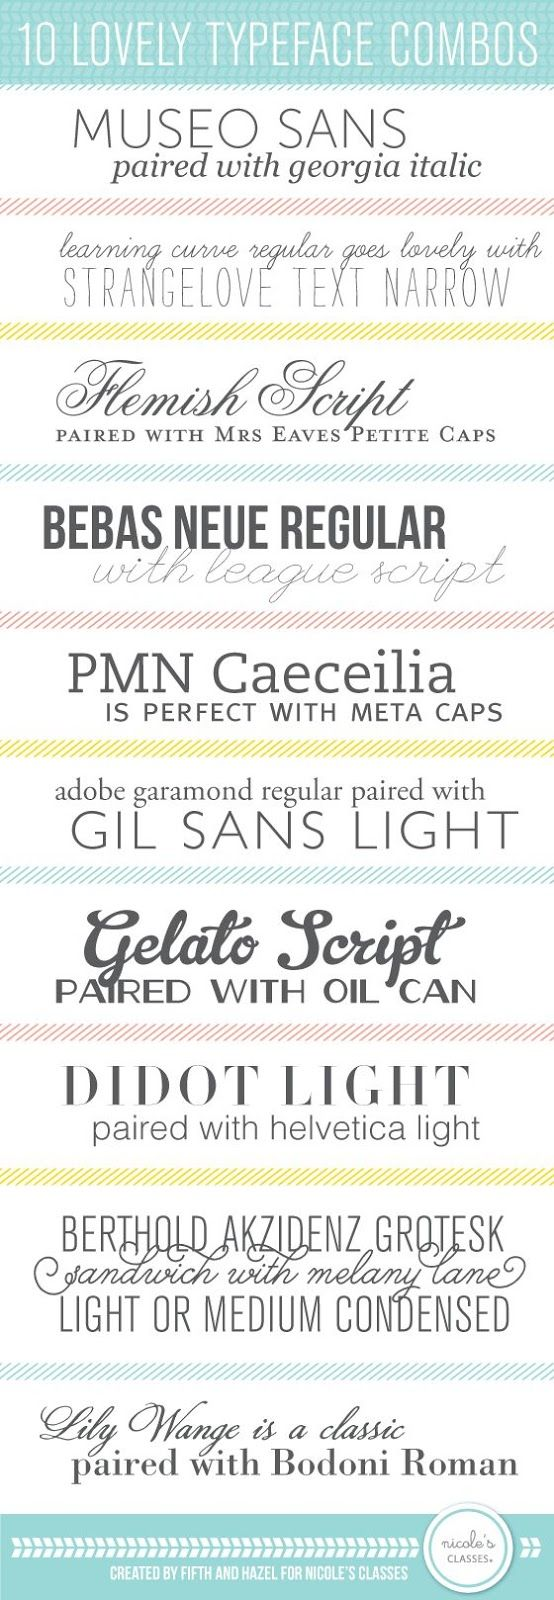 How to get more fonts on photoshop